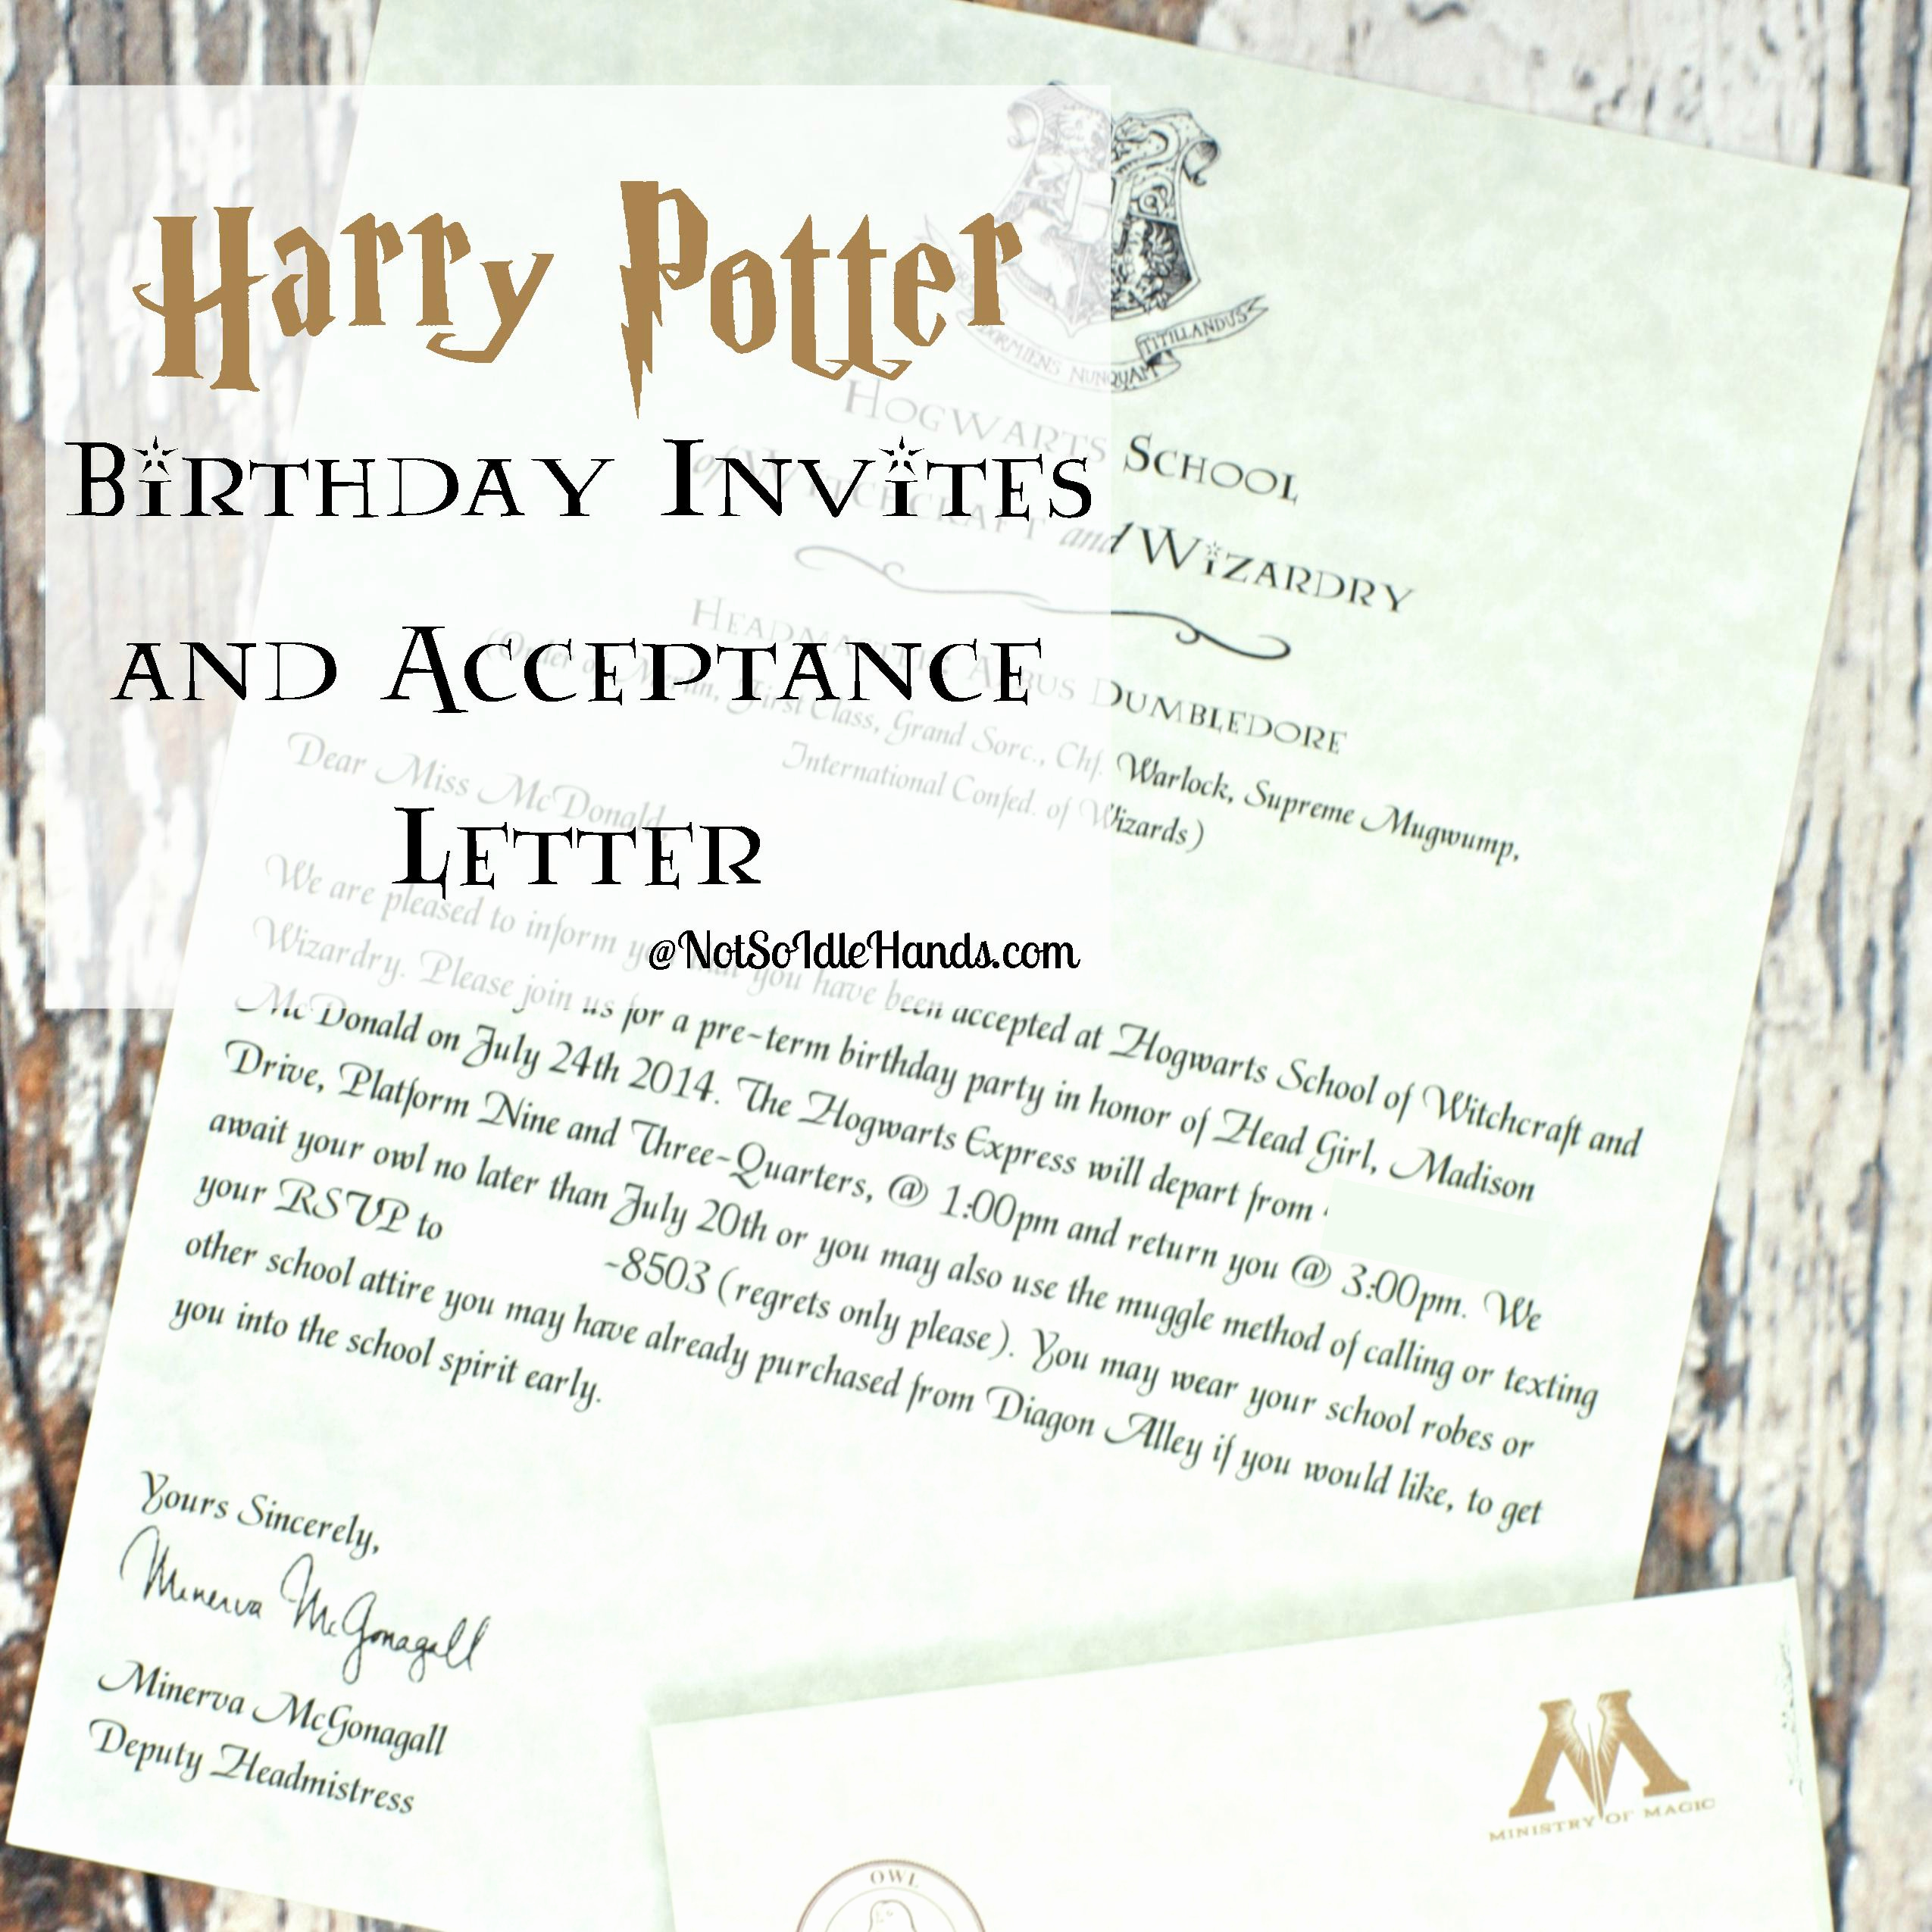 Hogwarts Birthday Invitation Template Beautiful Harry Potter Birthday Invitations and Authentic Acceptance